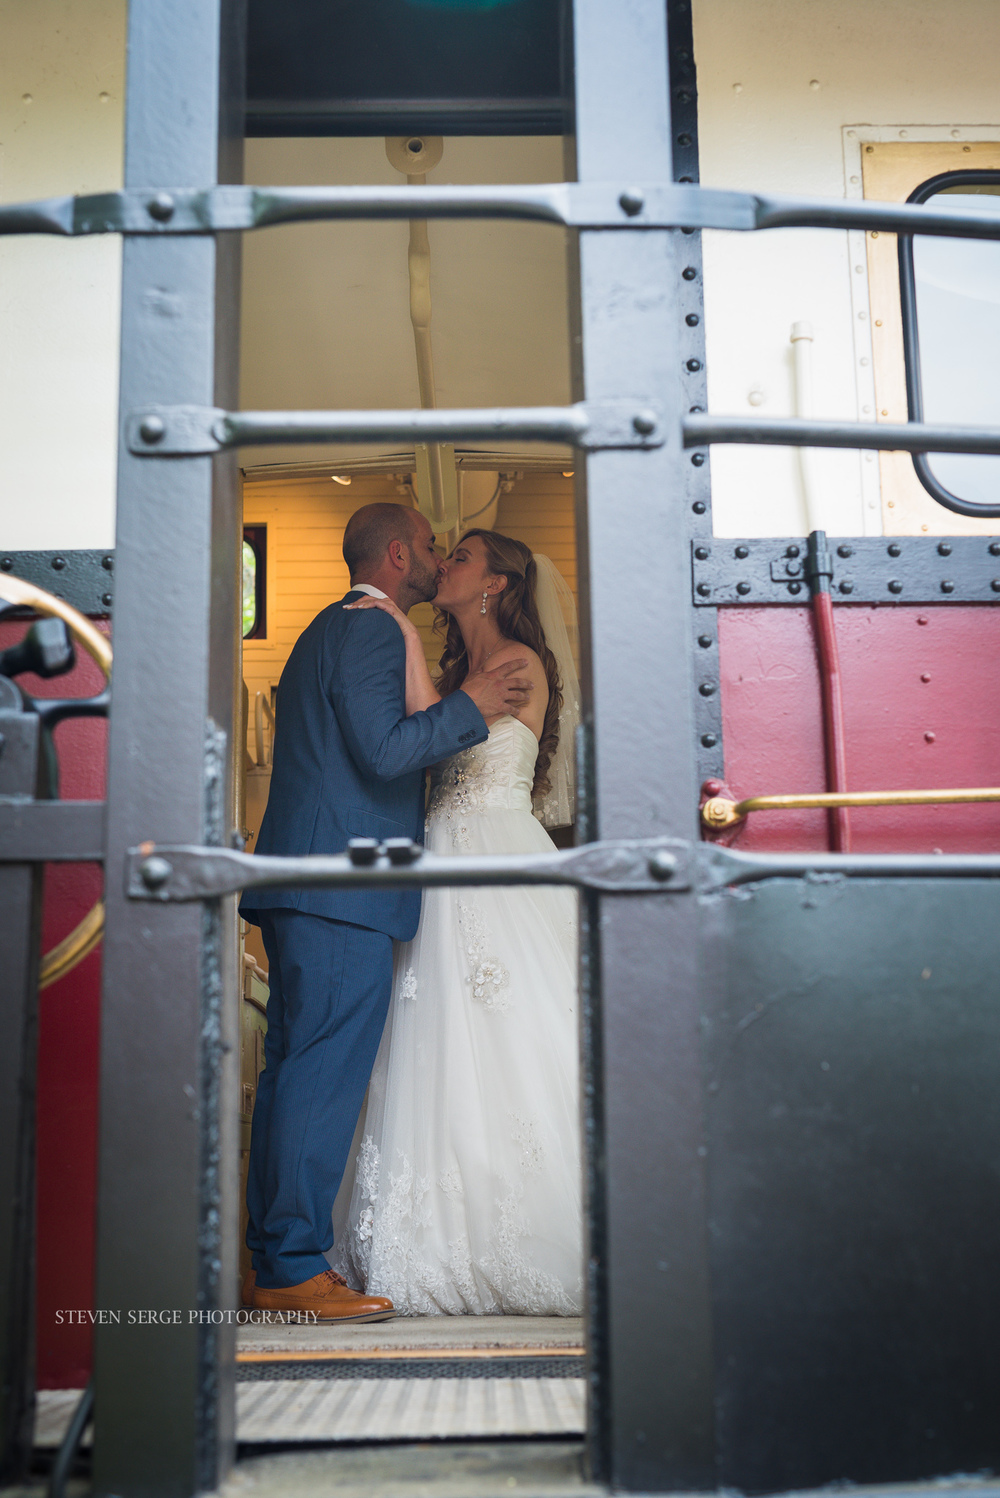 philadelphia-pheonixville-columbia-station-wedding-photographer-serge-steven-7.jpg